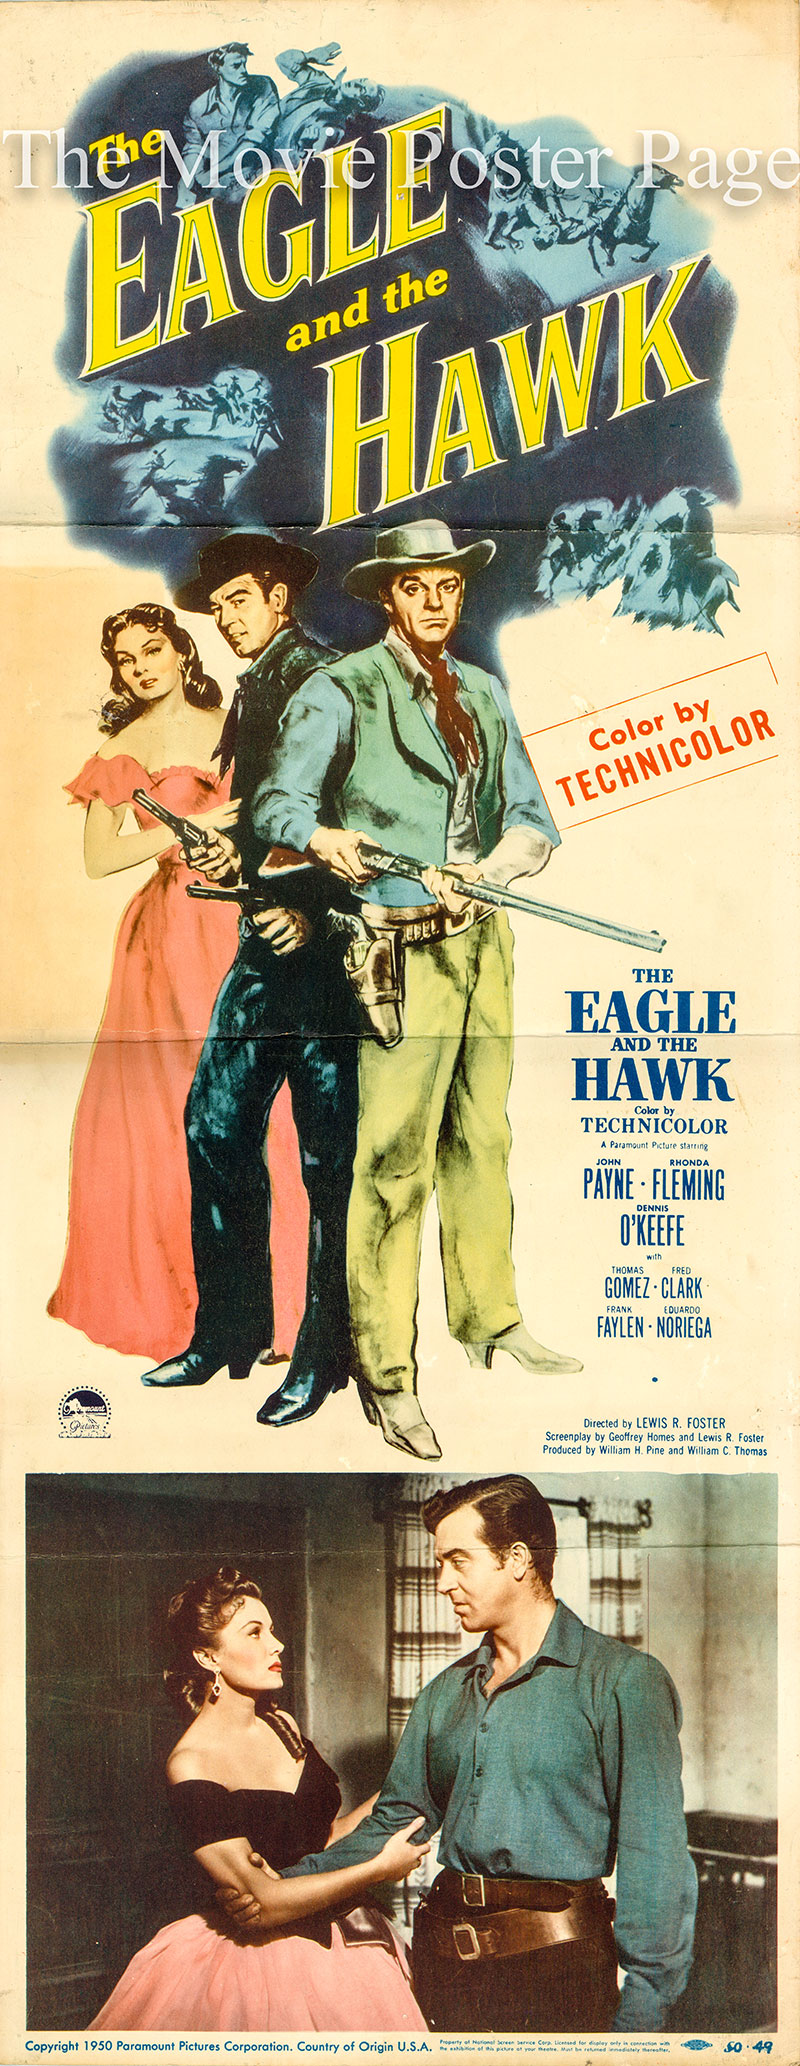 Pictured is a US insert promotional poster for the 1950 Lewis R. Foster Film the Eagle and the Hawk starring John Payne and Rhonda Fleming.